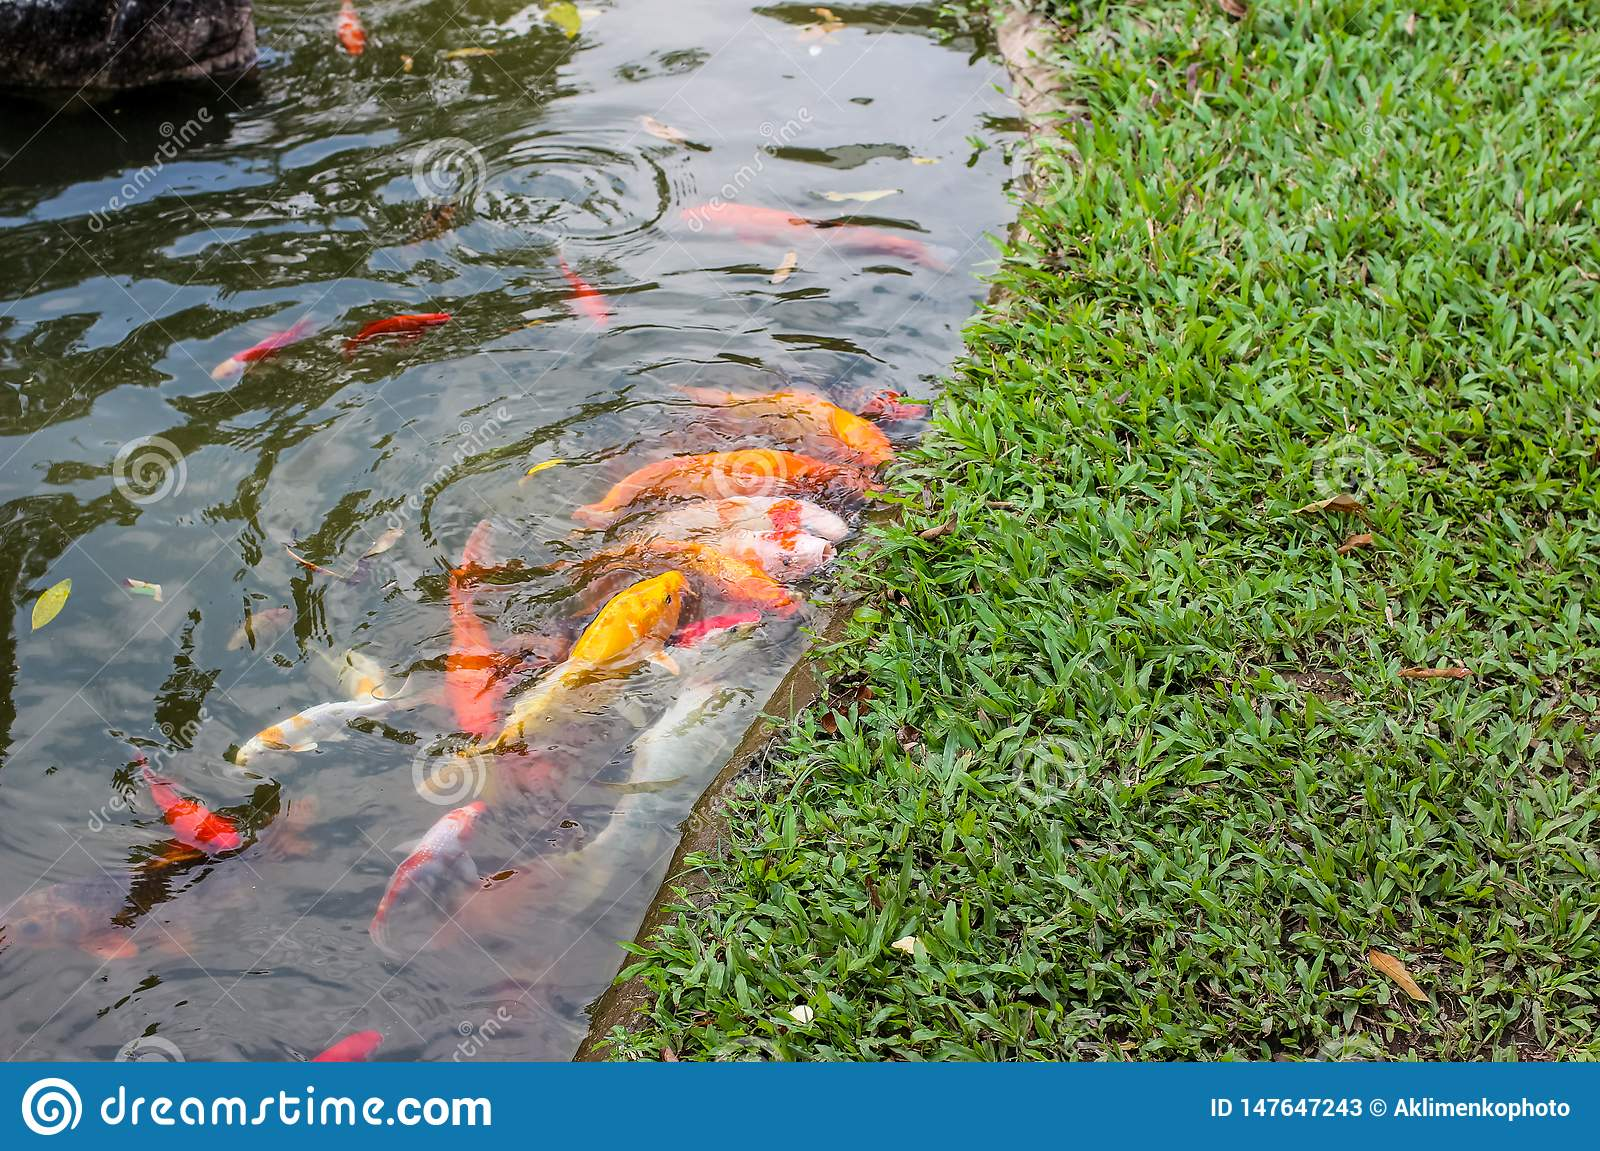 Koi carp fish swimming in a water. Golden fish swimming in pond.